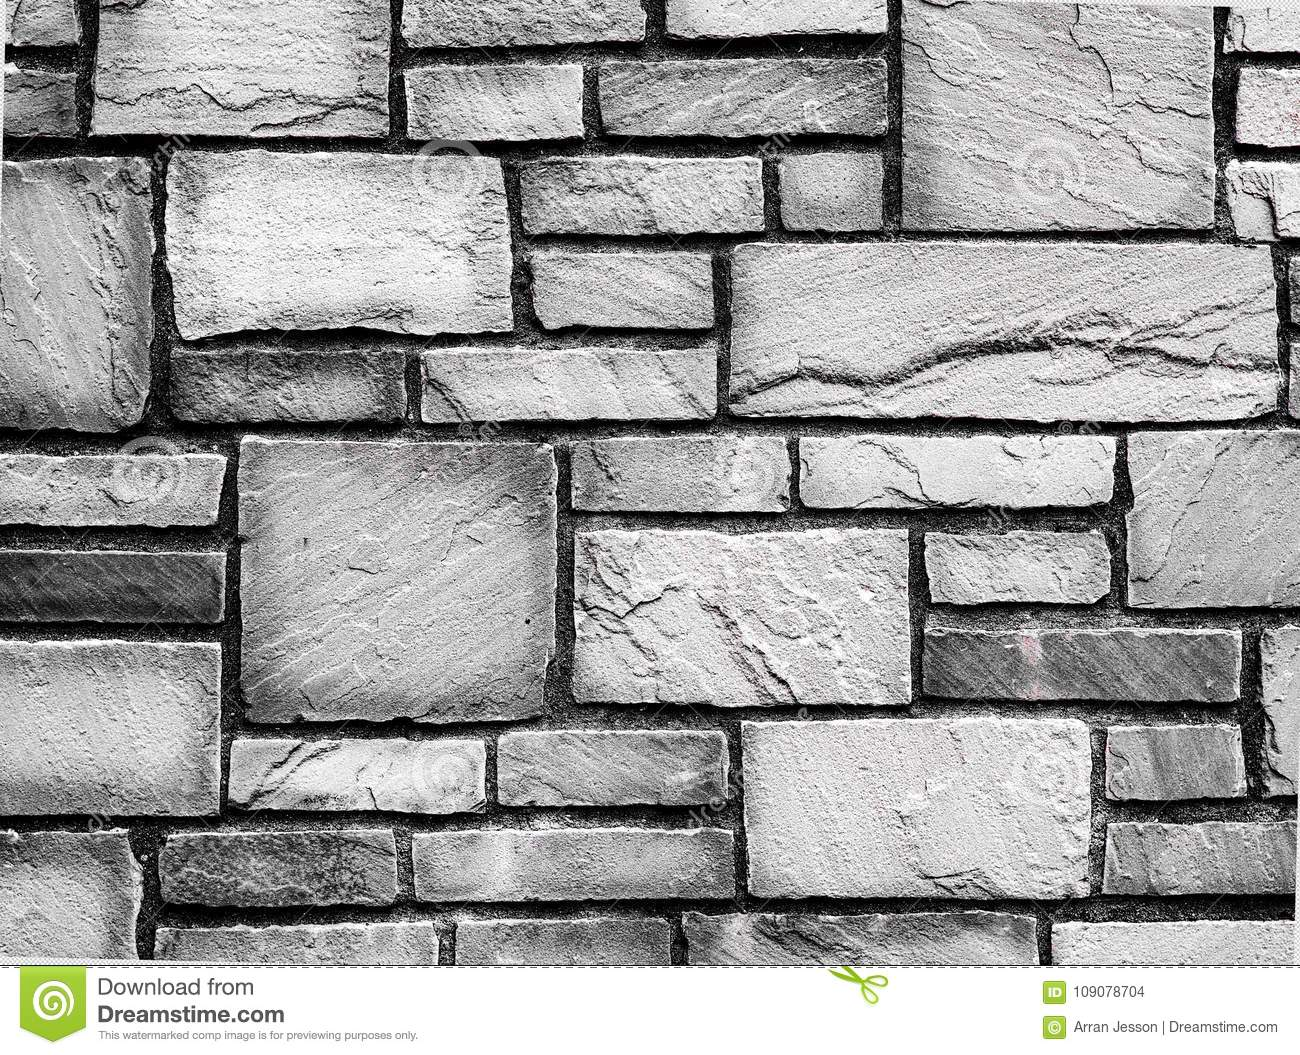 Black And White, Old Rough Textured Paved Brick Wall